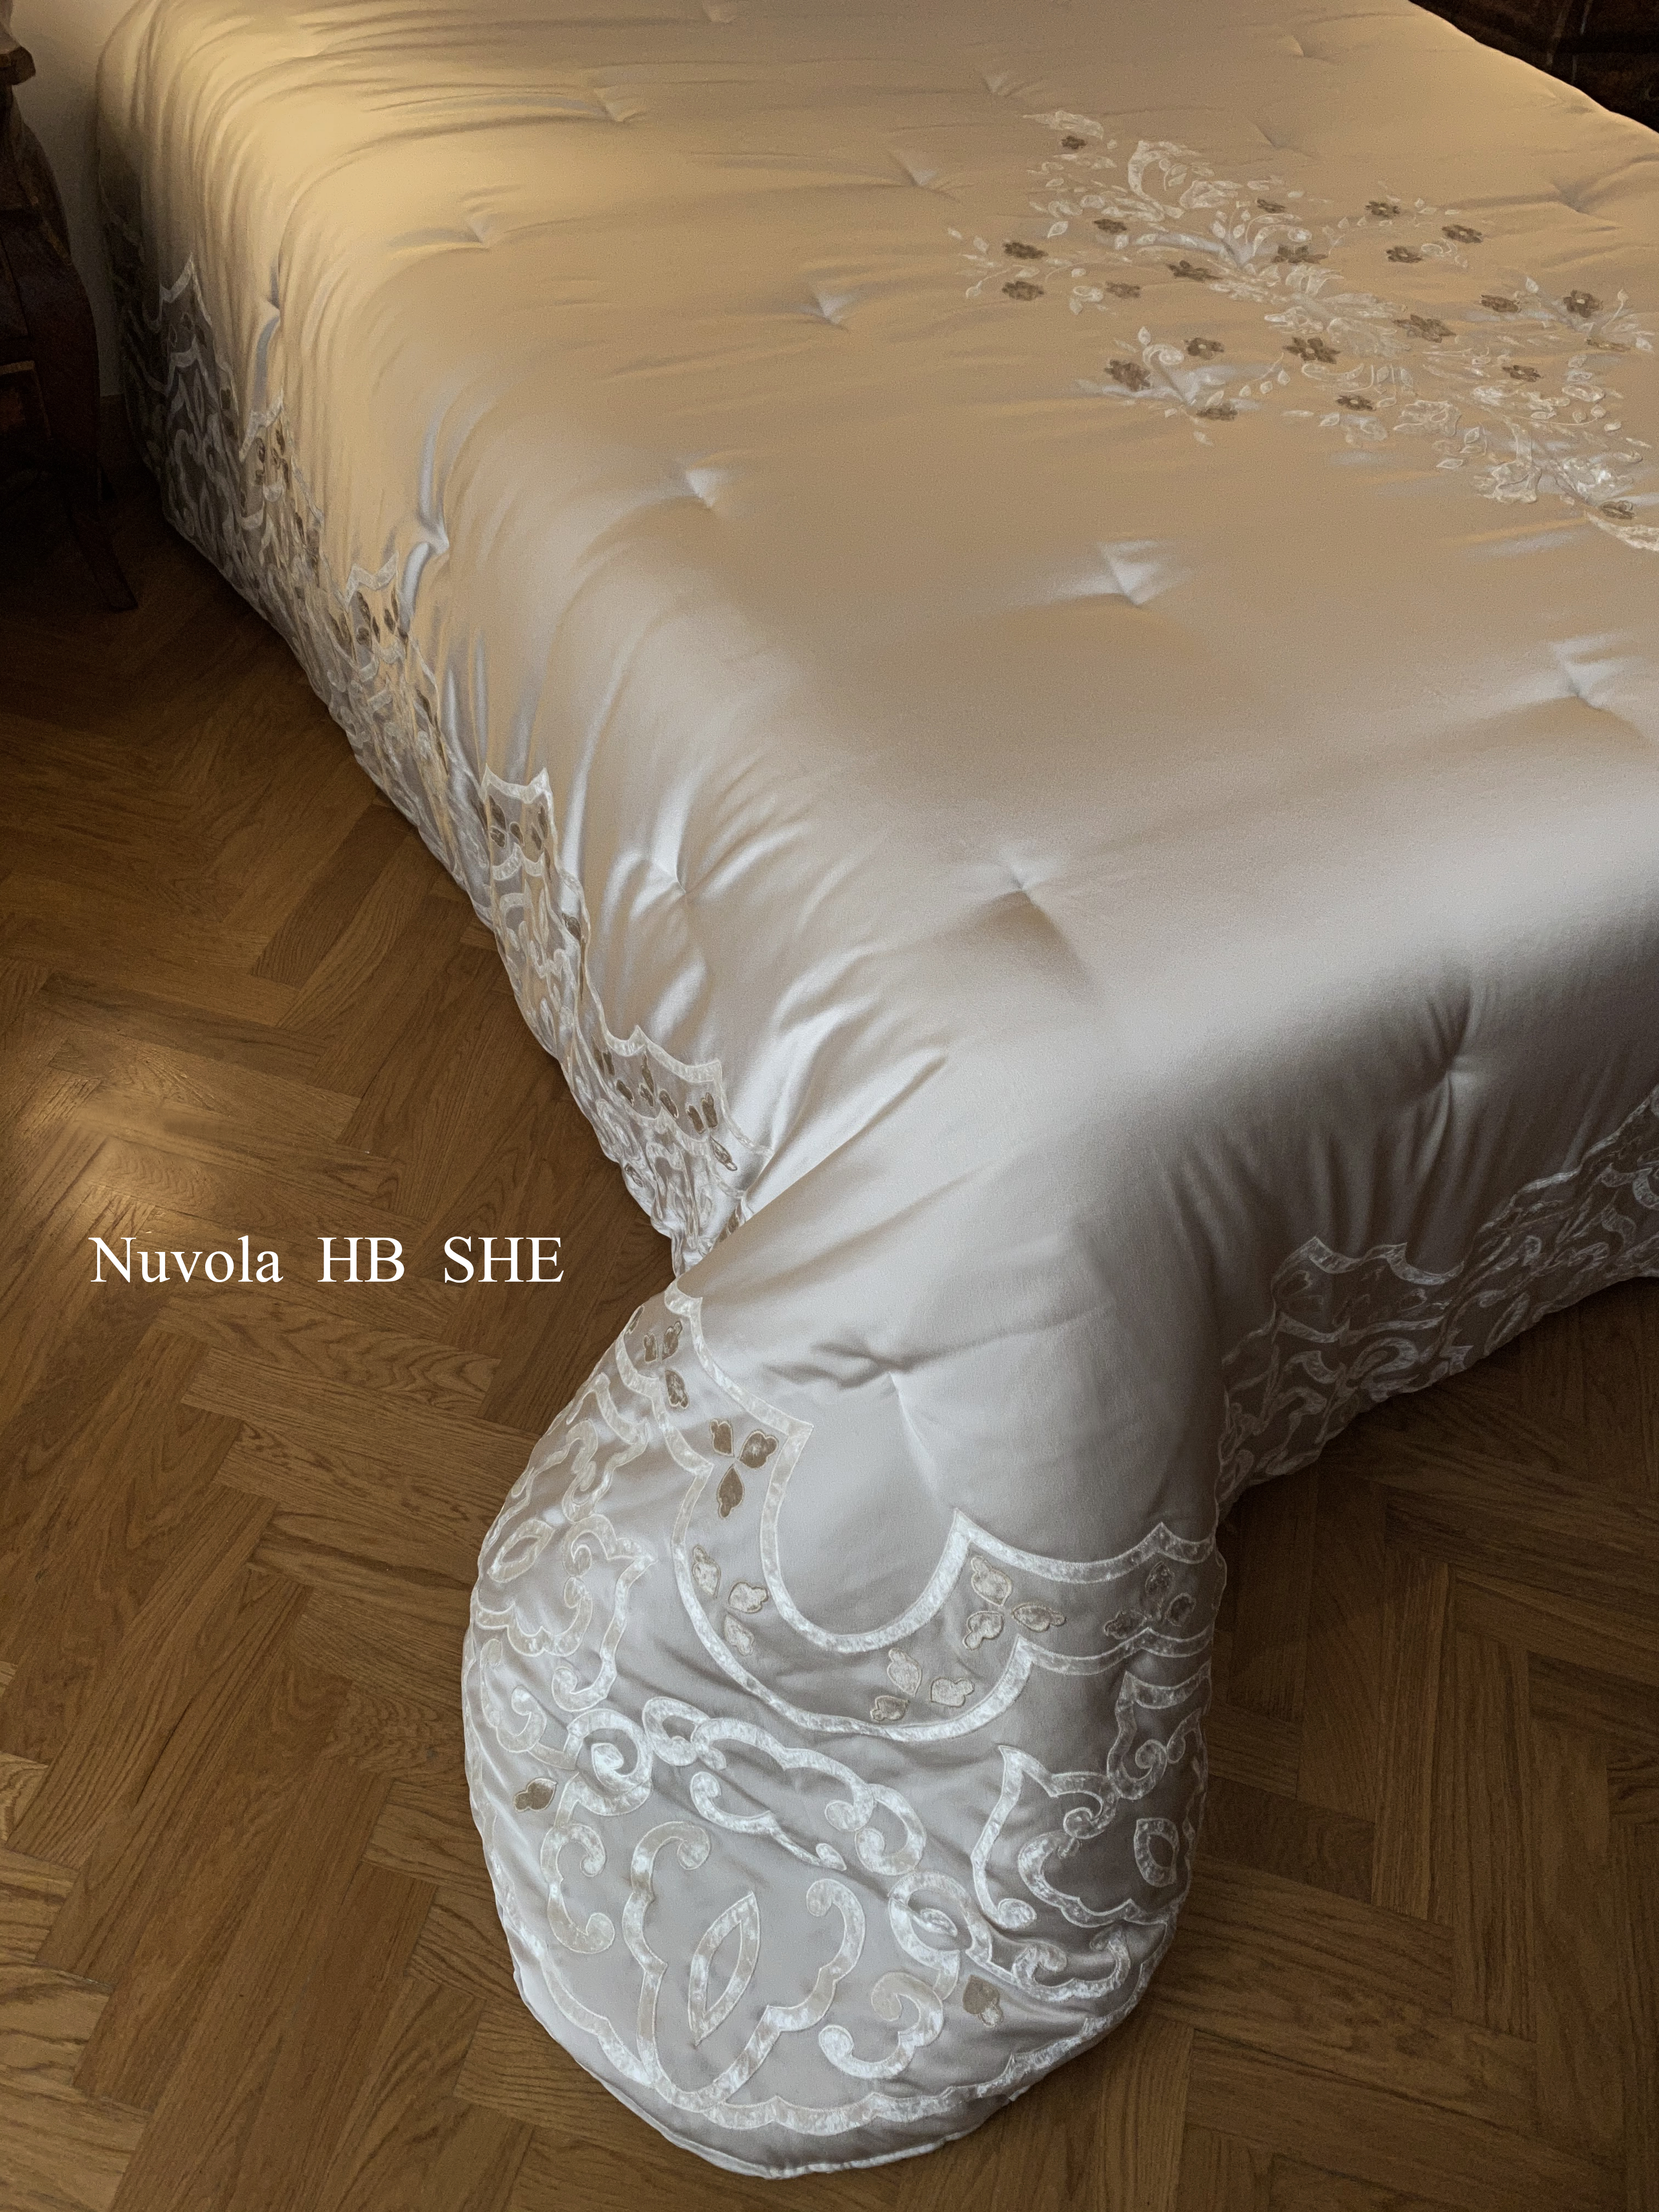 03 Nuvola HB SHE quilt